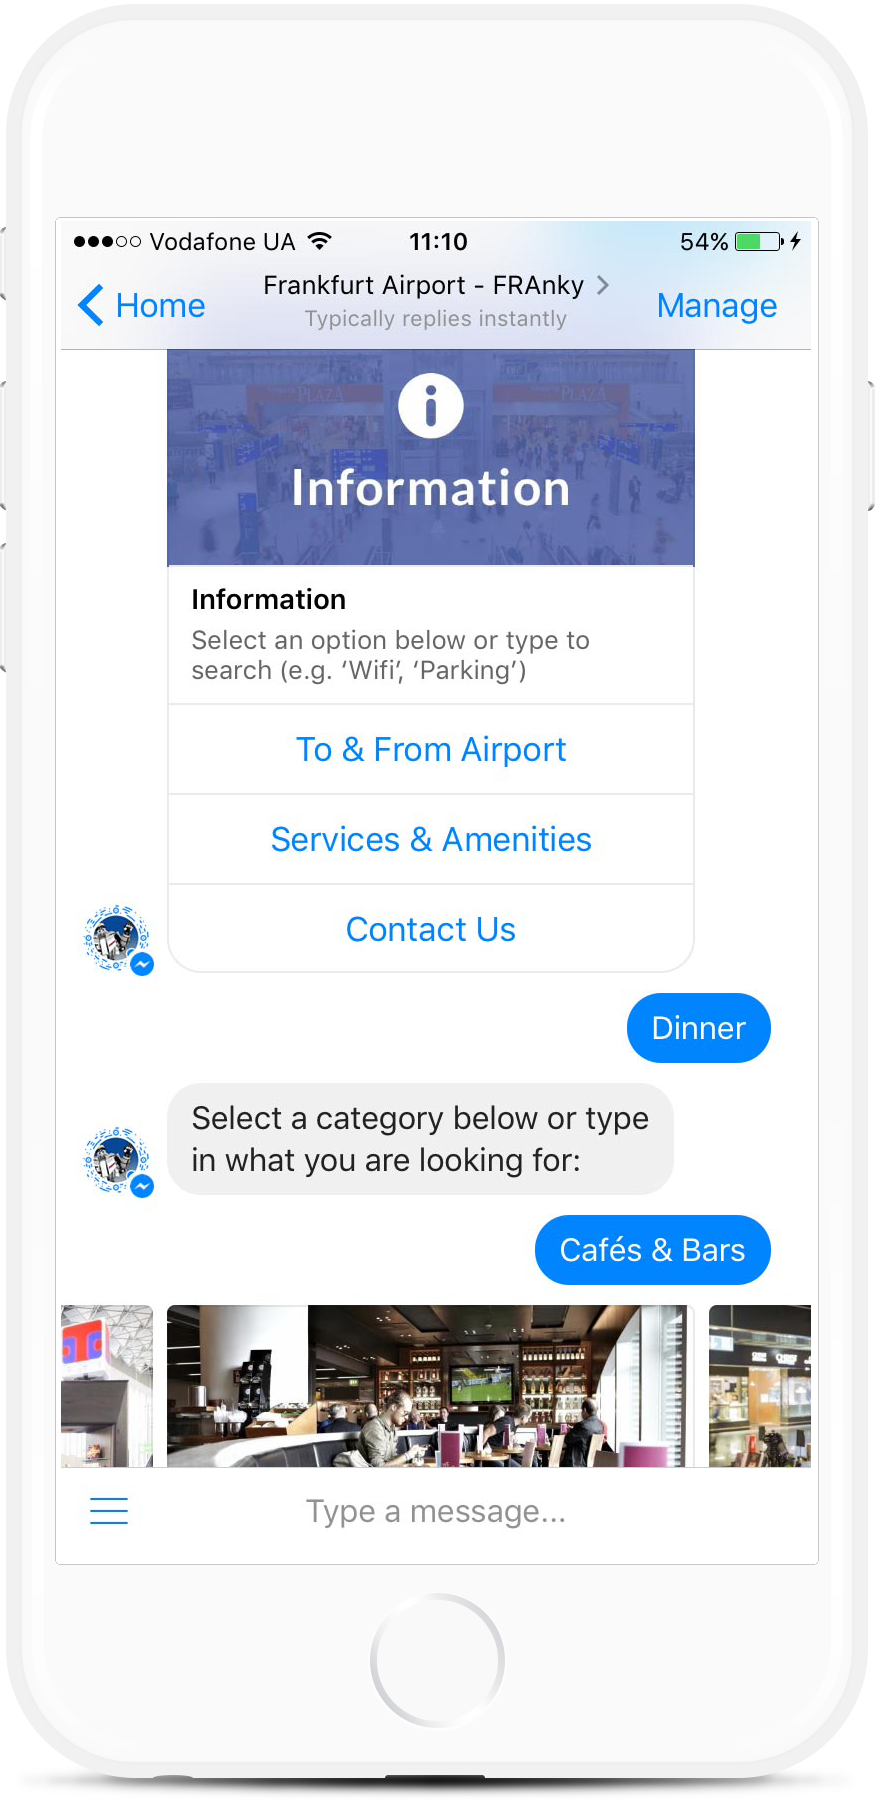 Airport Information Desk Facebook Bot